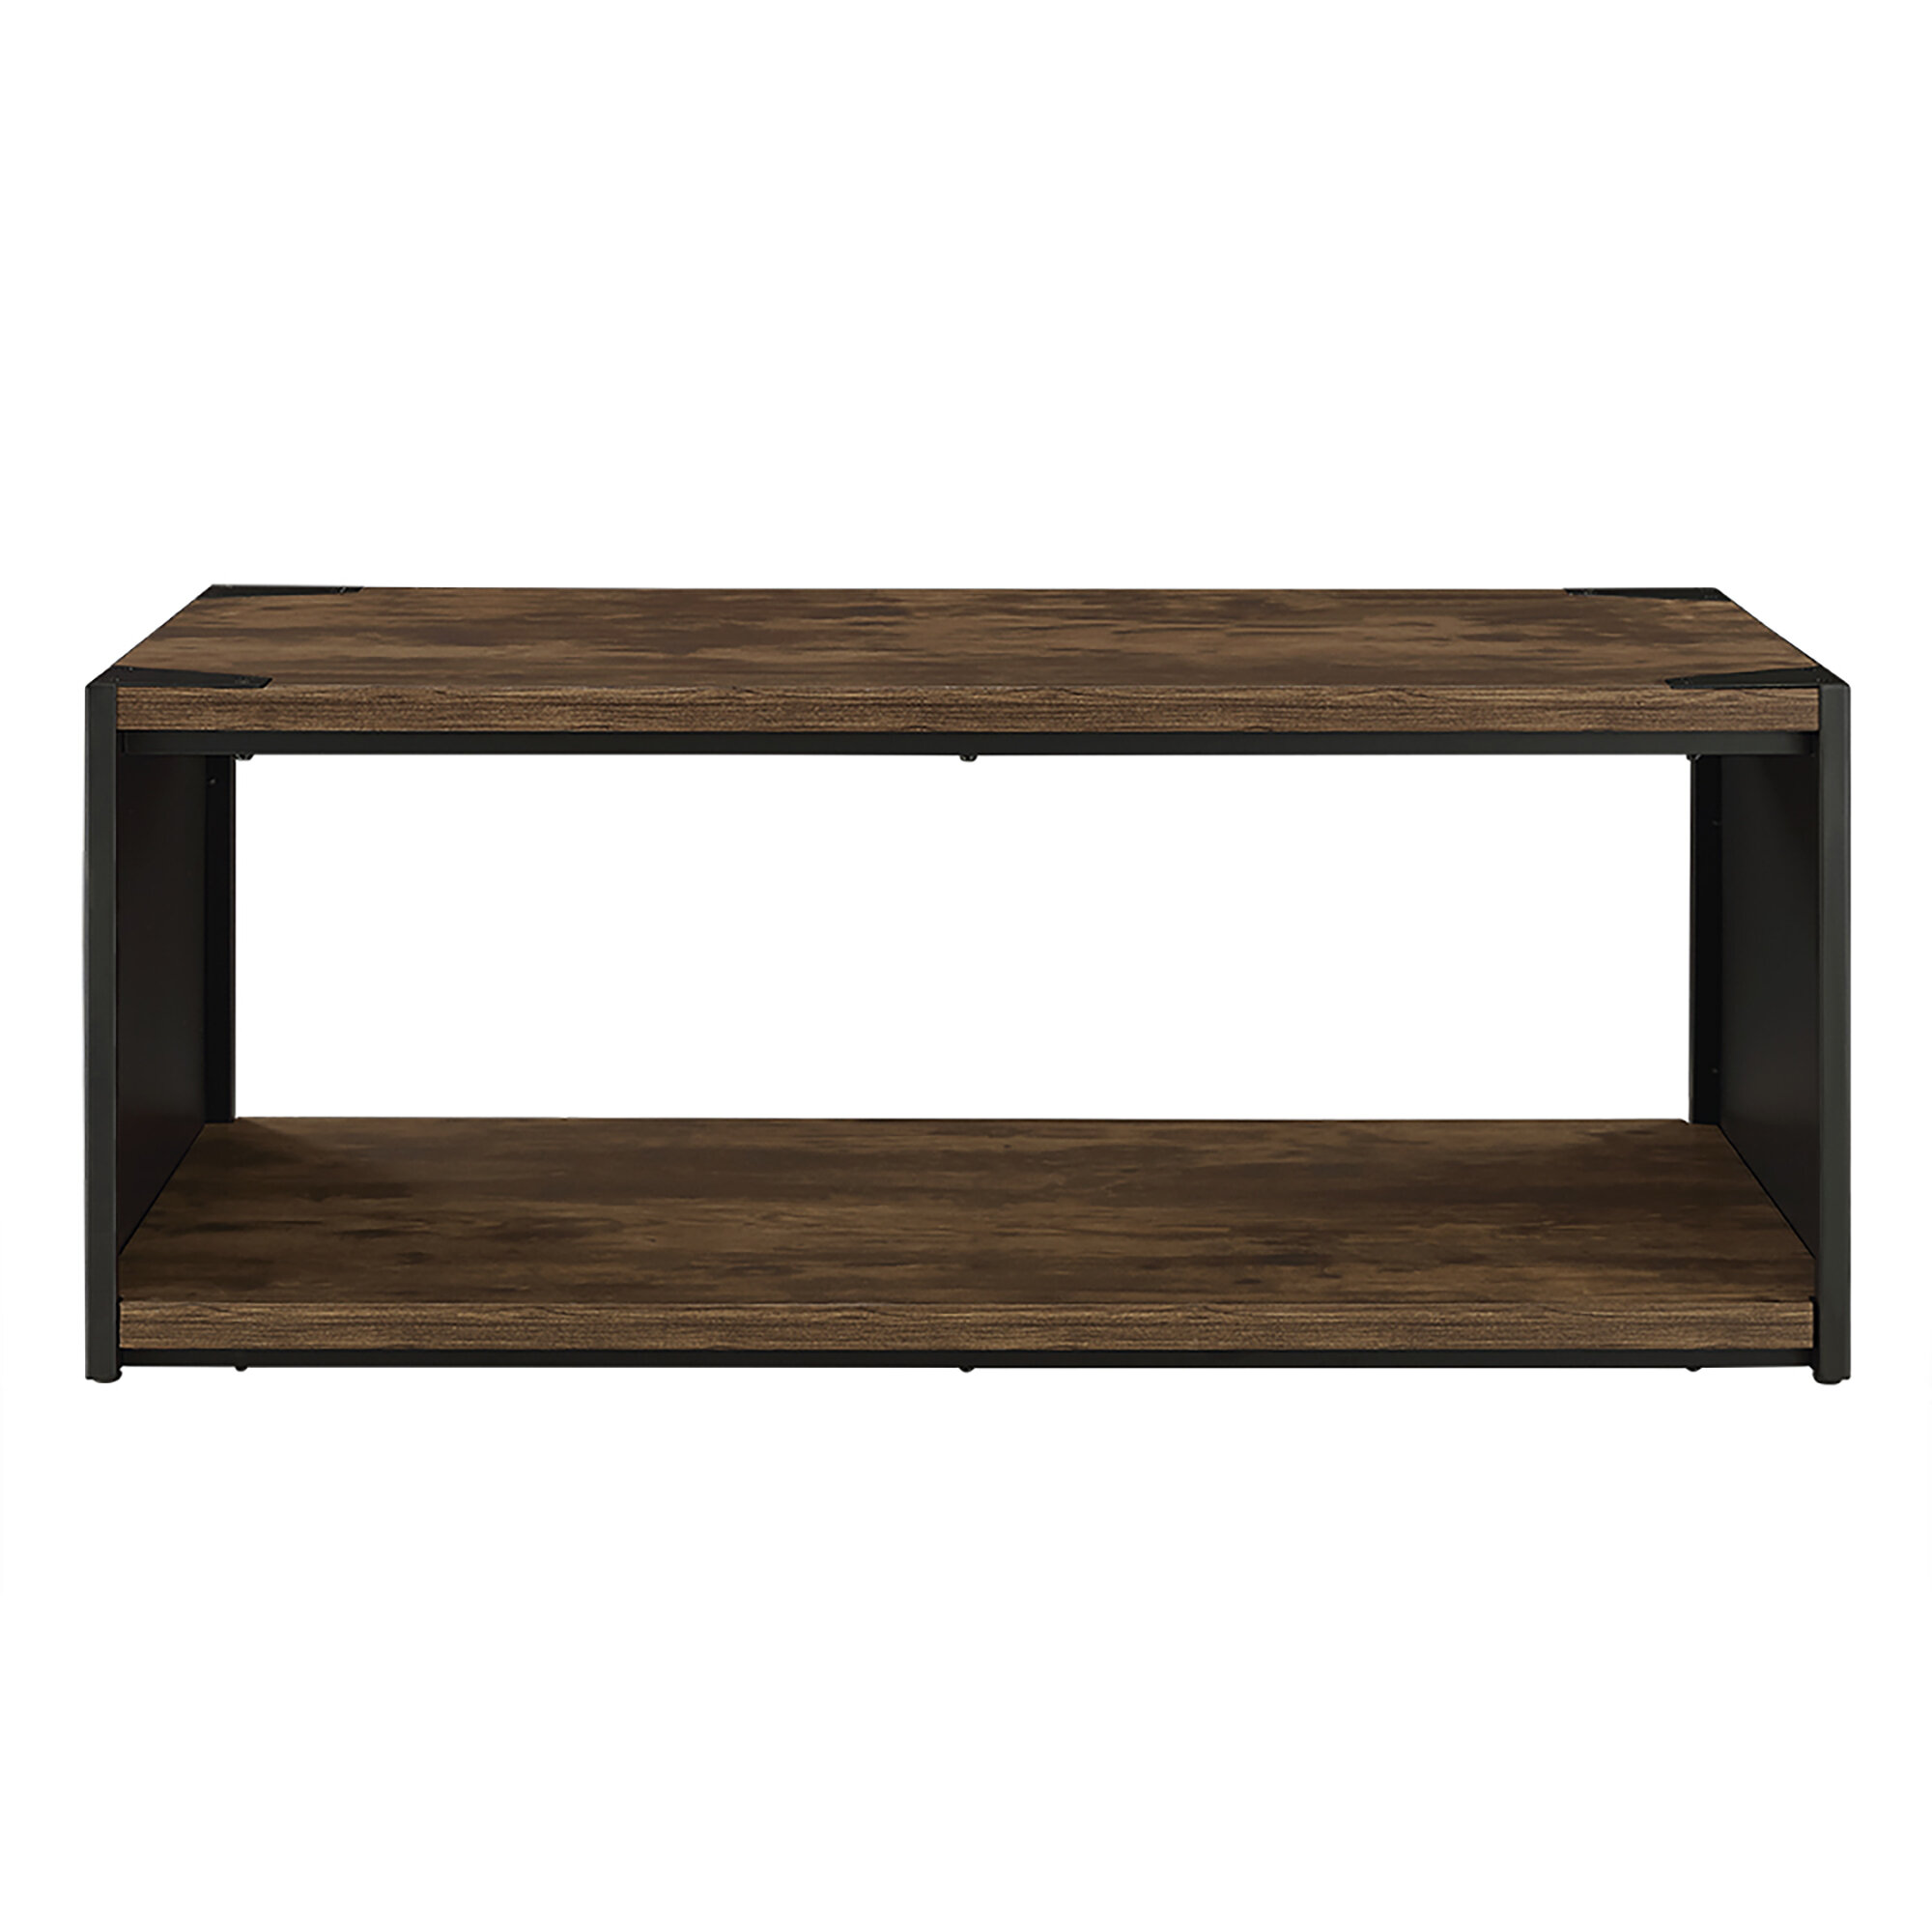 Rustic Coffee Table.Wingert Coffee Table